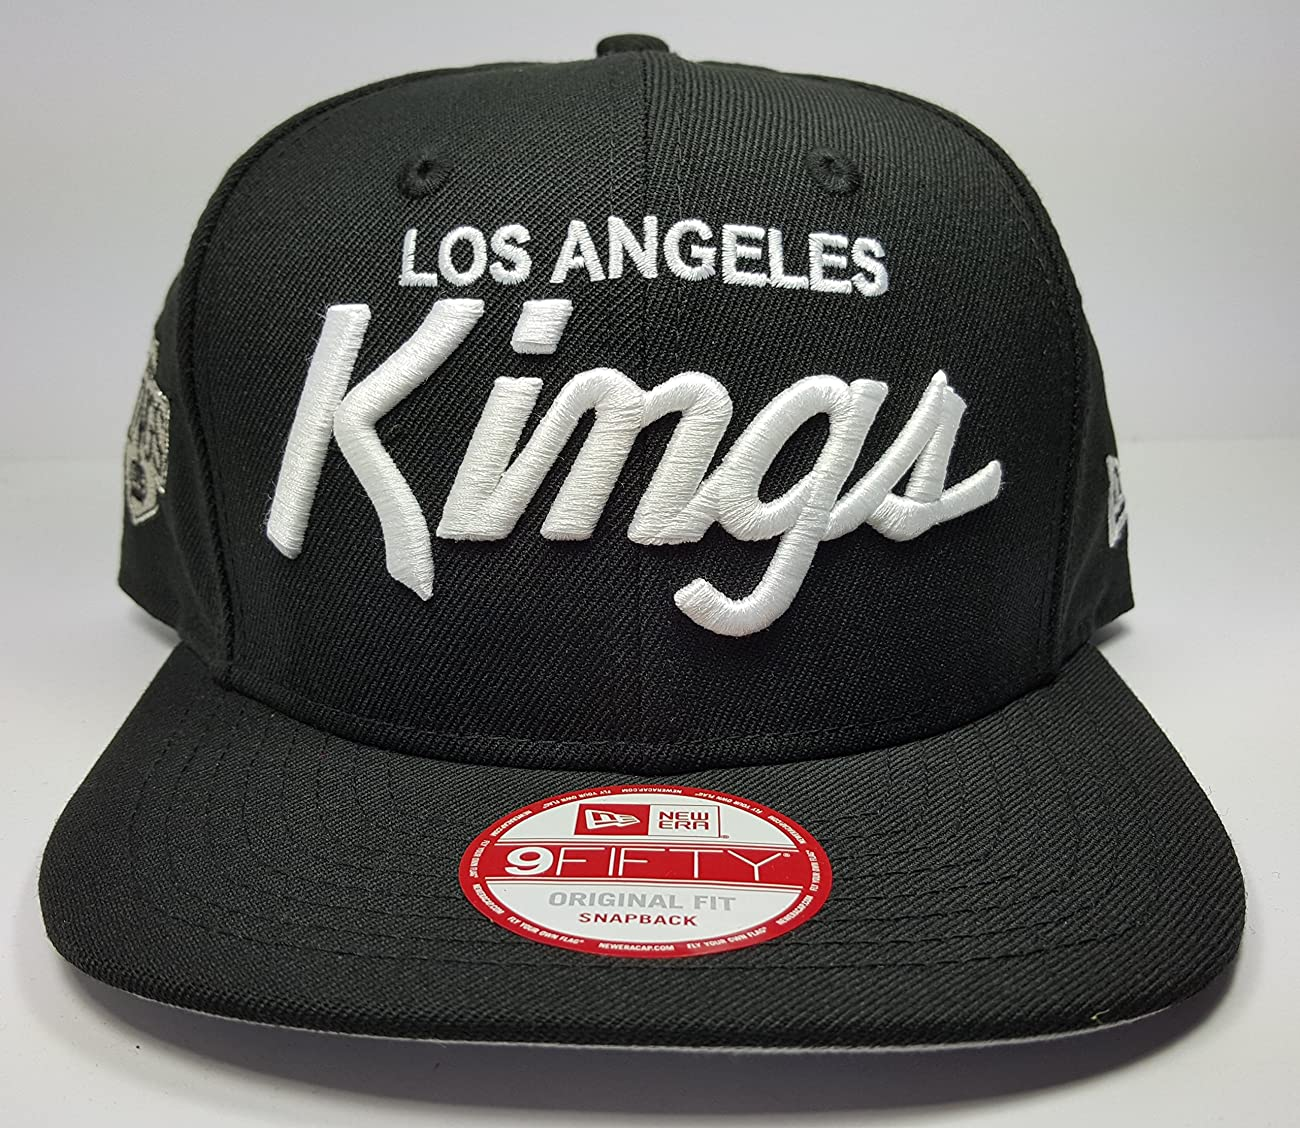 New Era Los Angeles Kings 9Fifty Black and White Vintage Script N.W.A Adjustable Snapback Hat NFL 2